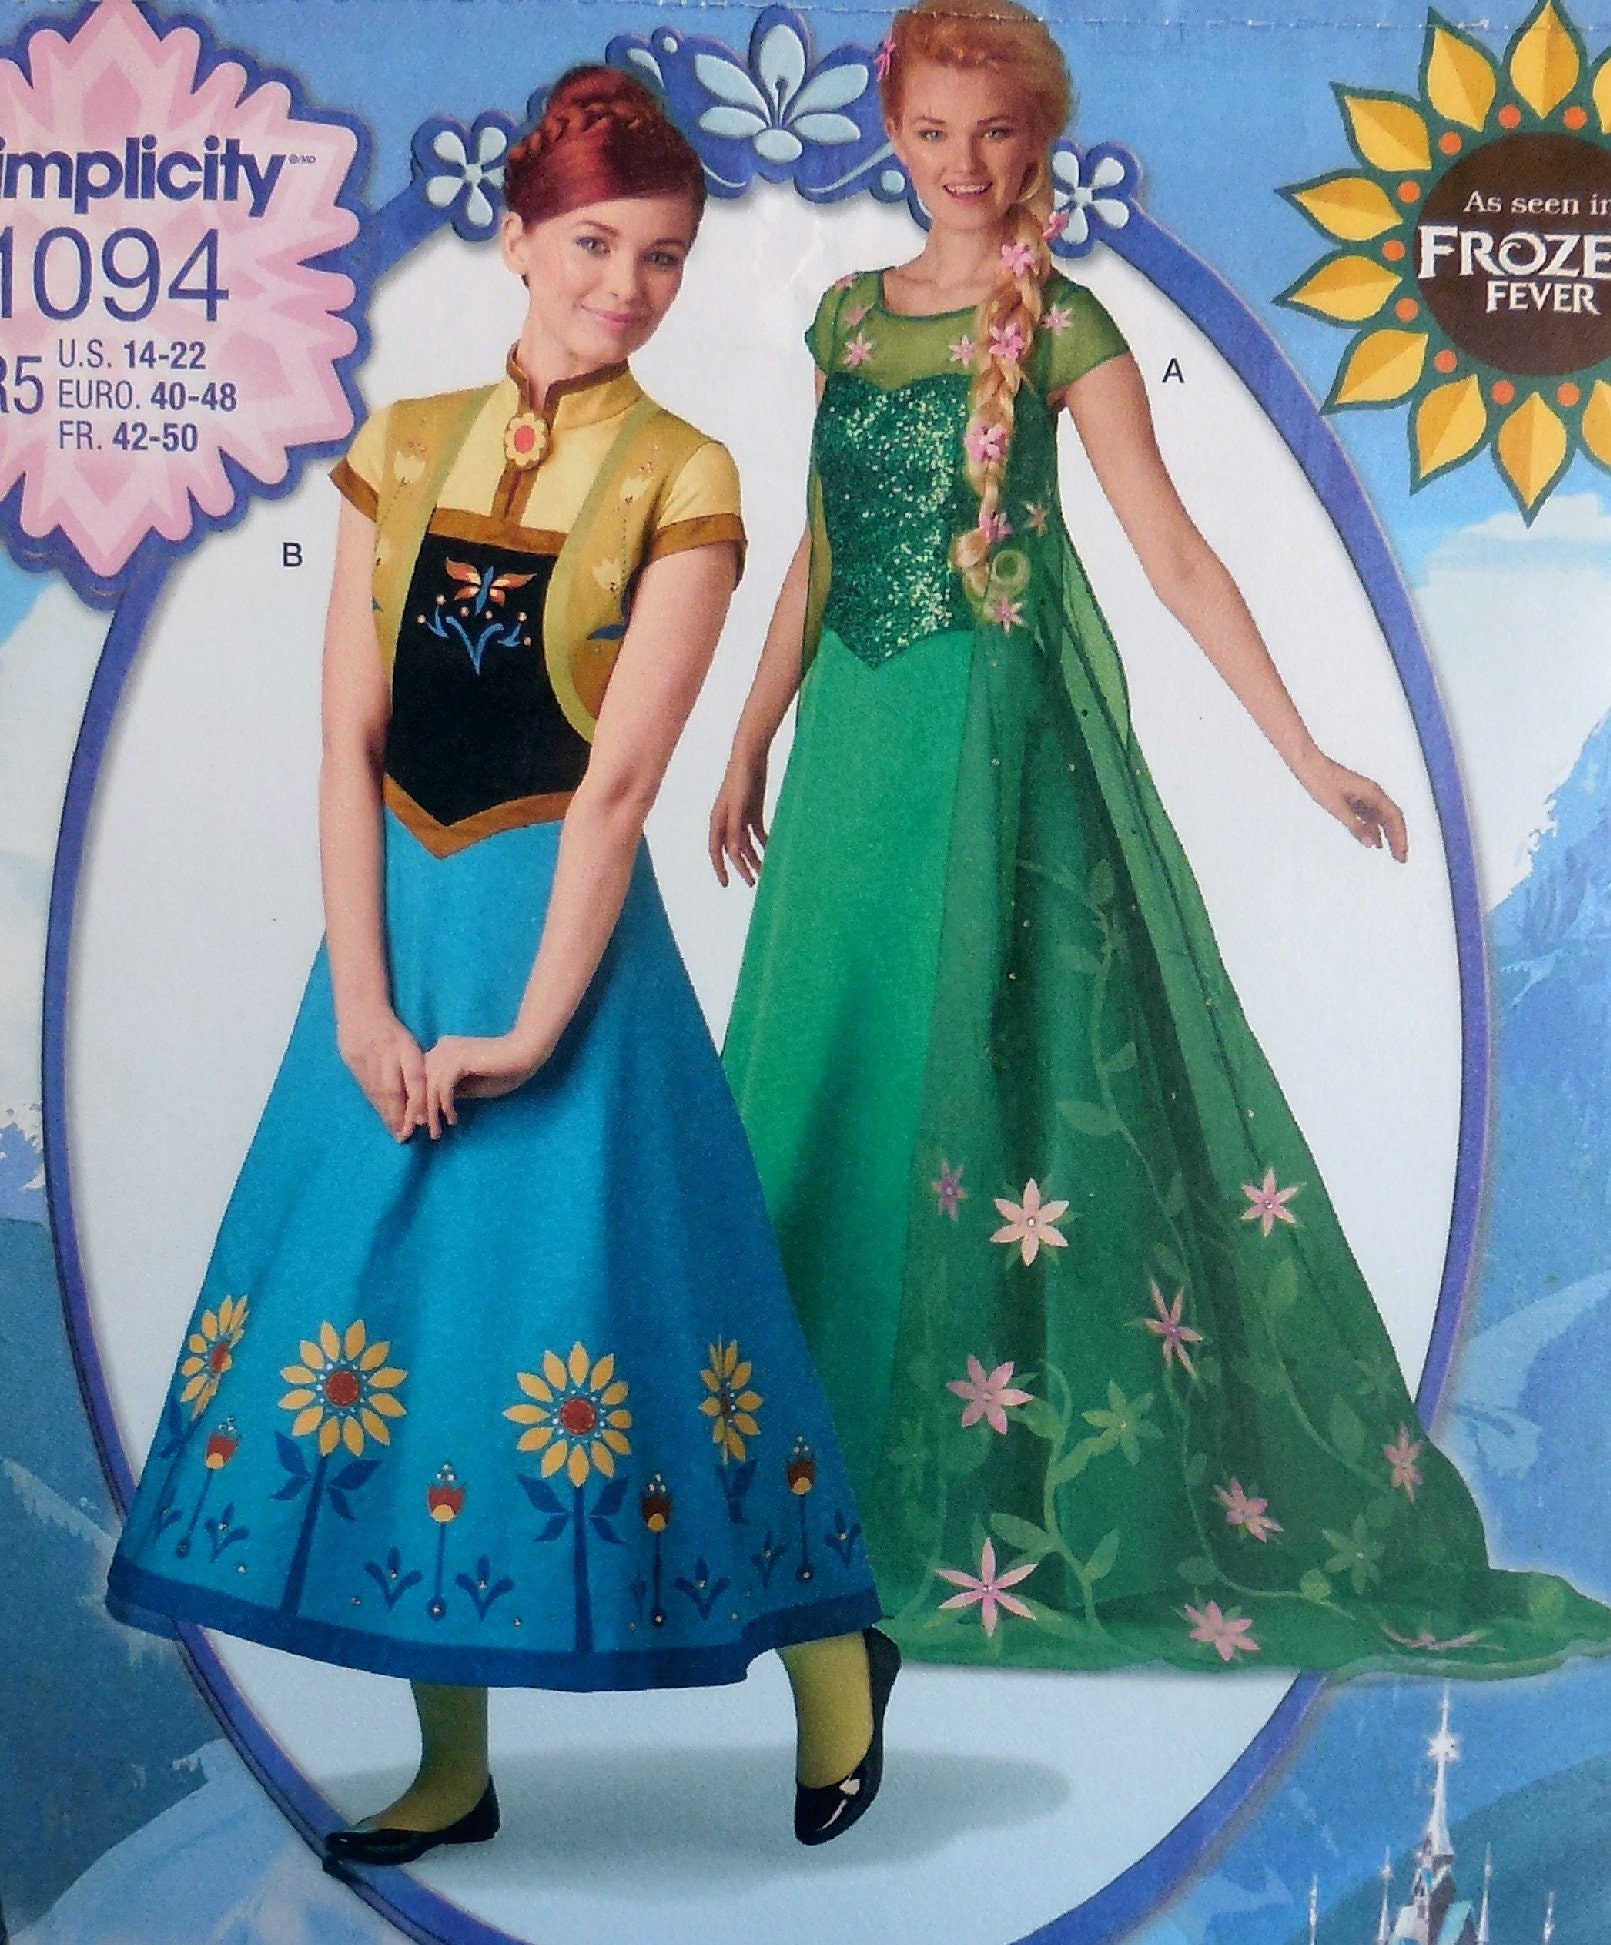 a6548fb43ed Picture of Frozen Fever Elsa Cosplay Costume mp002711 ... 50. Frozen Fever Disney  Princess ...